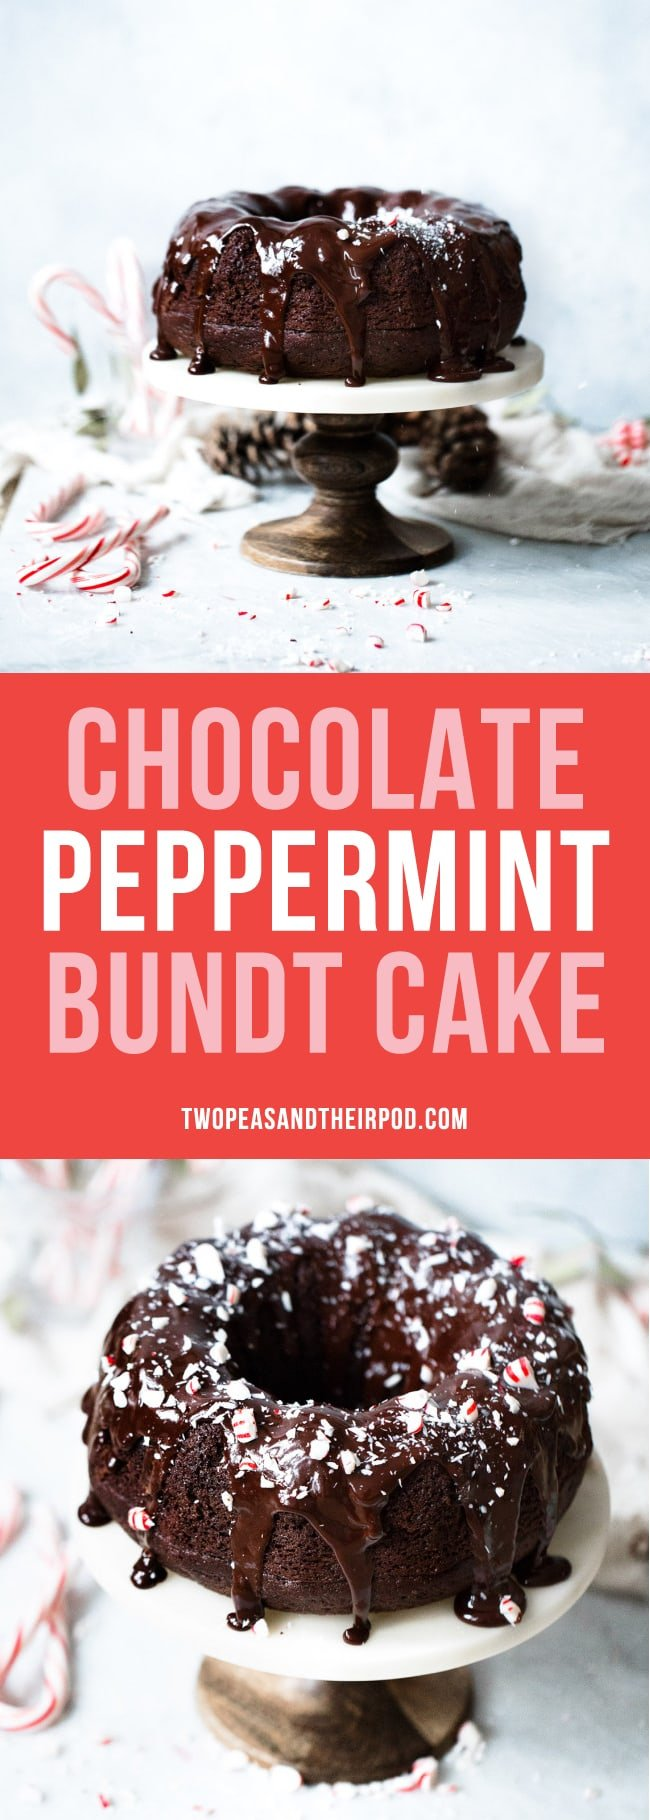 Chocolate Peppermint Bundt Cake is the perfect dessert for Christmas and the holidays. #Christmas #holidays #chocolatecake #chocolate #peppermint